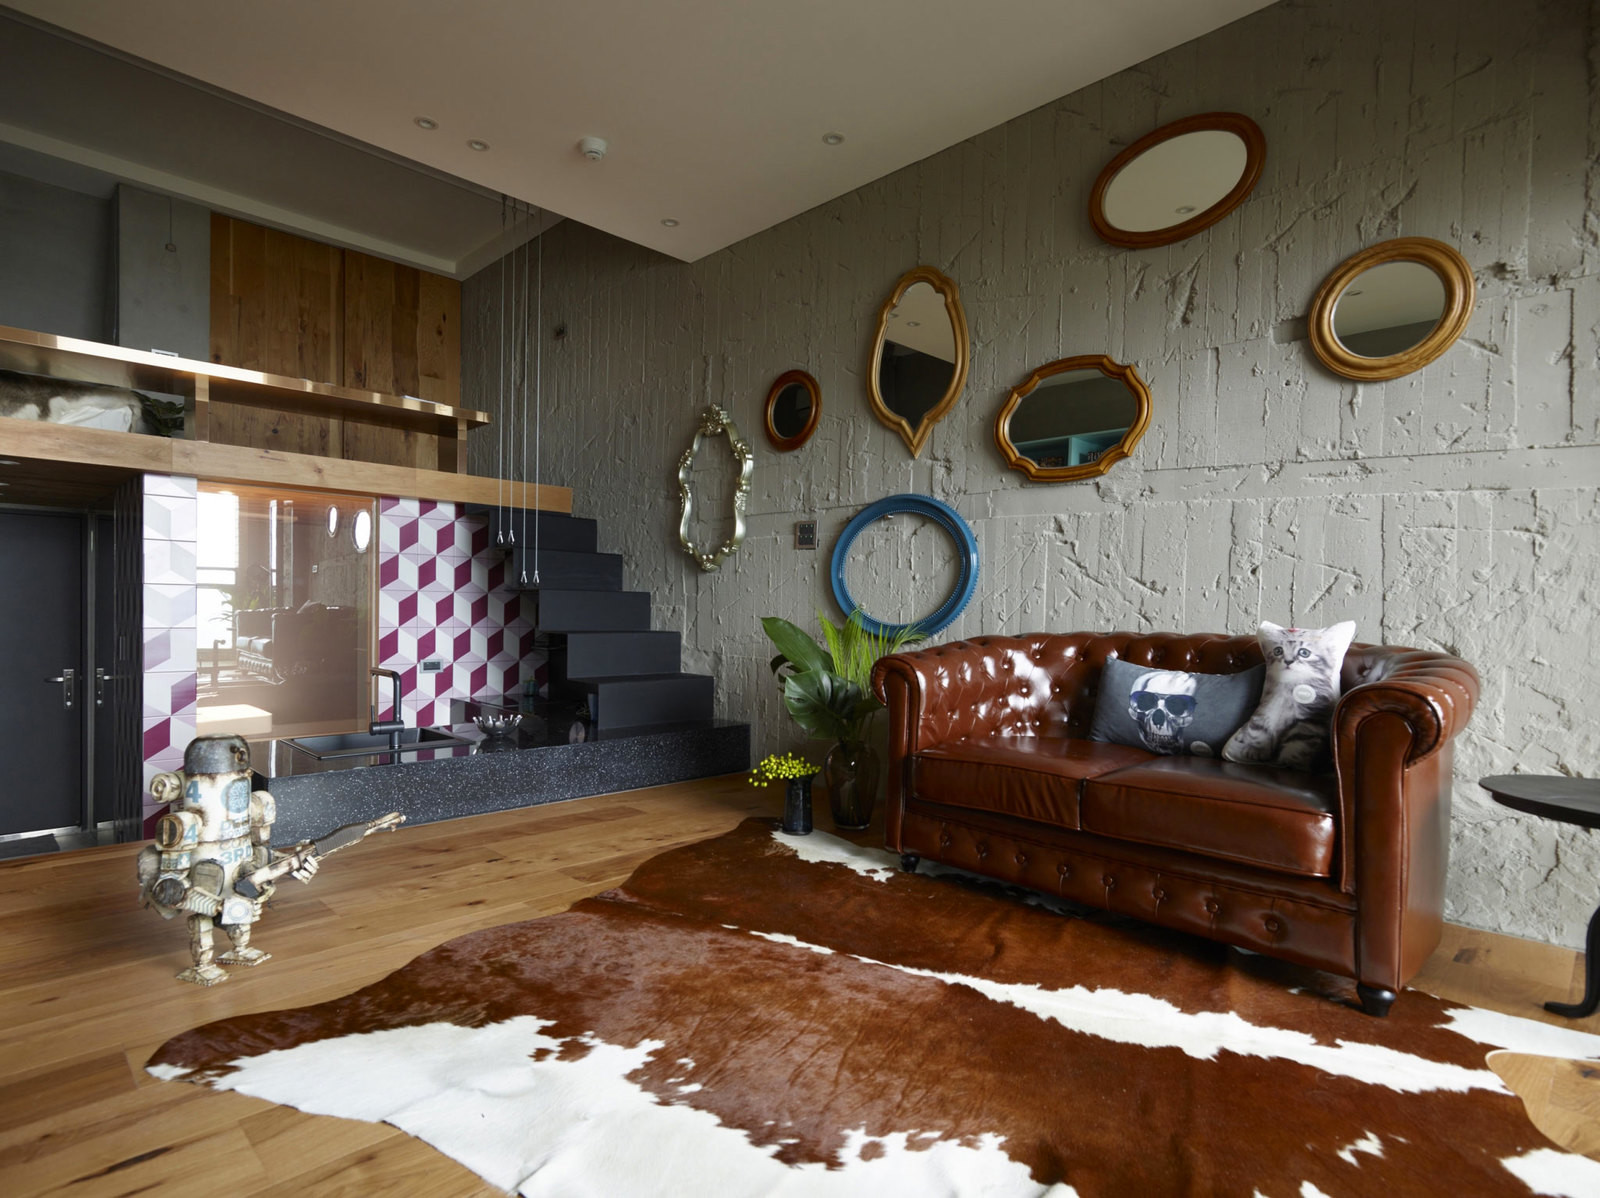 Eclectic Interior For Eclectic People Adorable Home